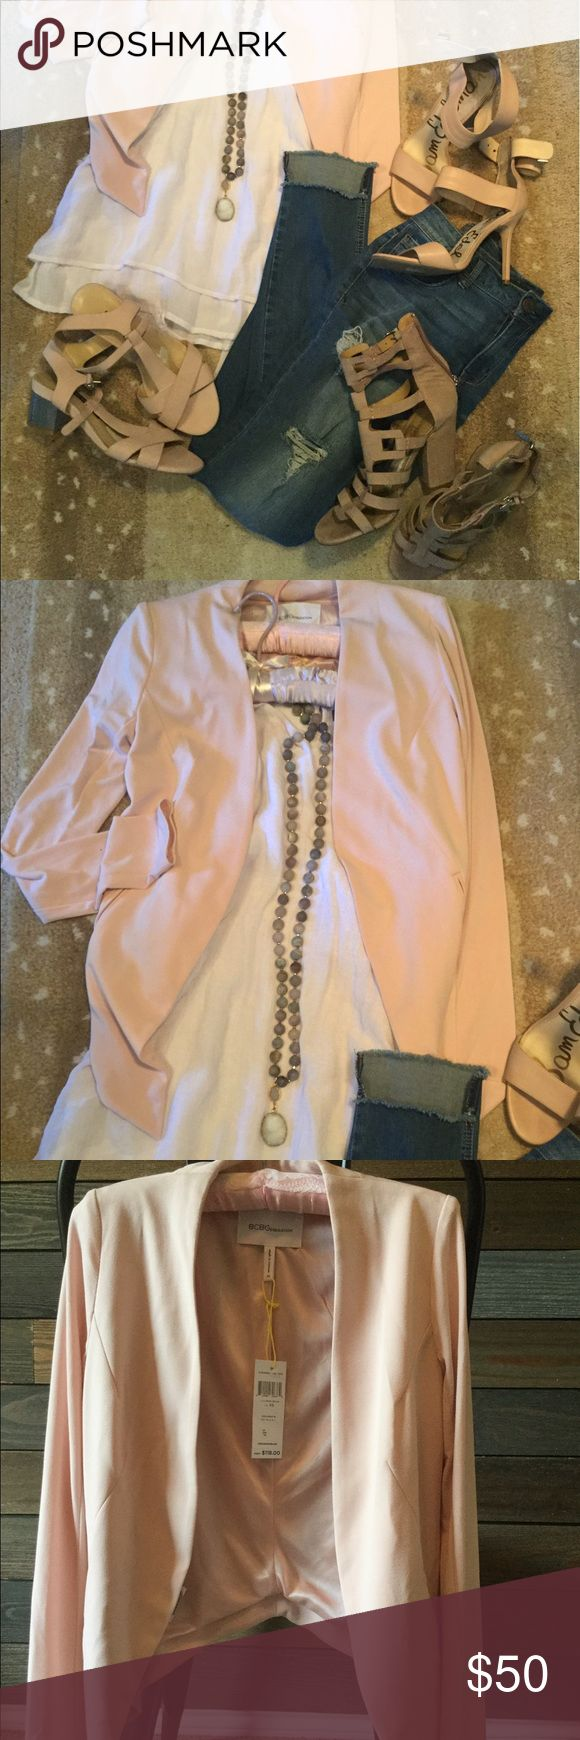 BCBGeneration blush pink jacket SIZE XS! NWT! So many fun ways to wear this jacket day or night! Whether it's to work or if you're going to lunch or dinner with friends or a date night! It is a soft blush color and is new with tags ...never been worn .. size XS! Rose smoke is the color! I don't know about you but I'm a pocket girl and this jacket has them!! Also, if you're interested all of the shoes in the picture are very gently worn some only worn for a few hours!  I will be posting them…